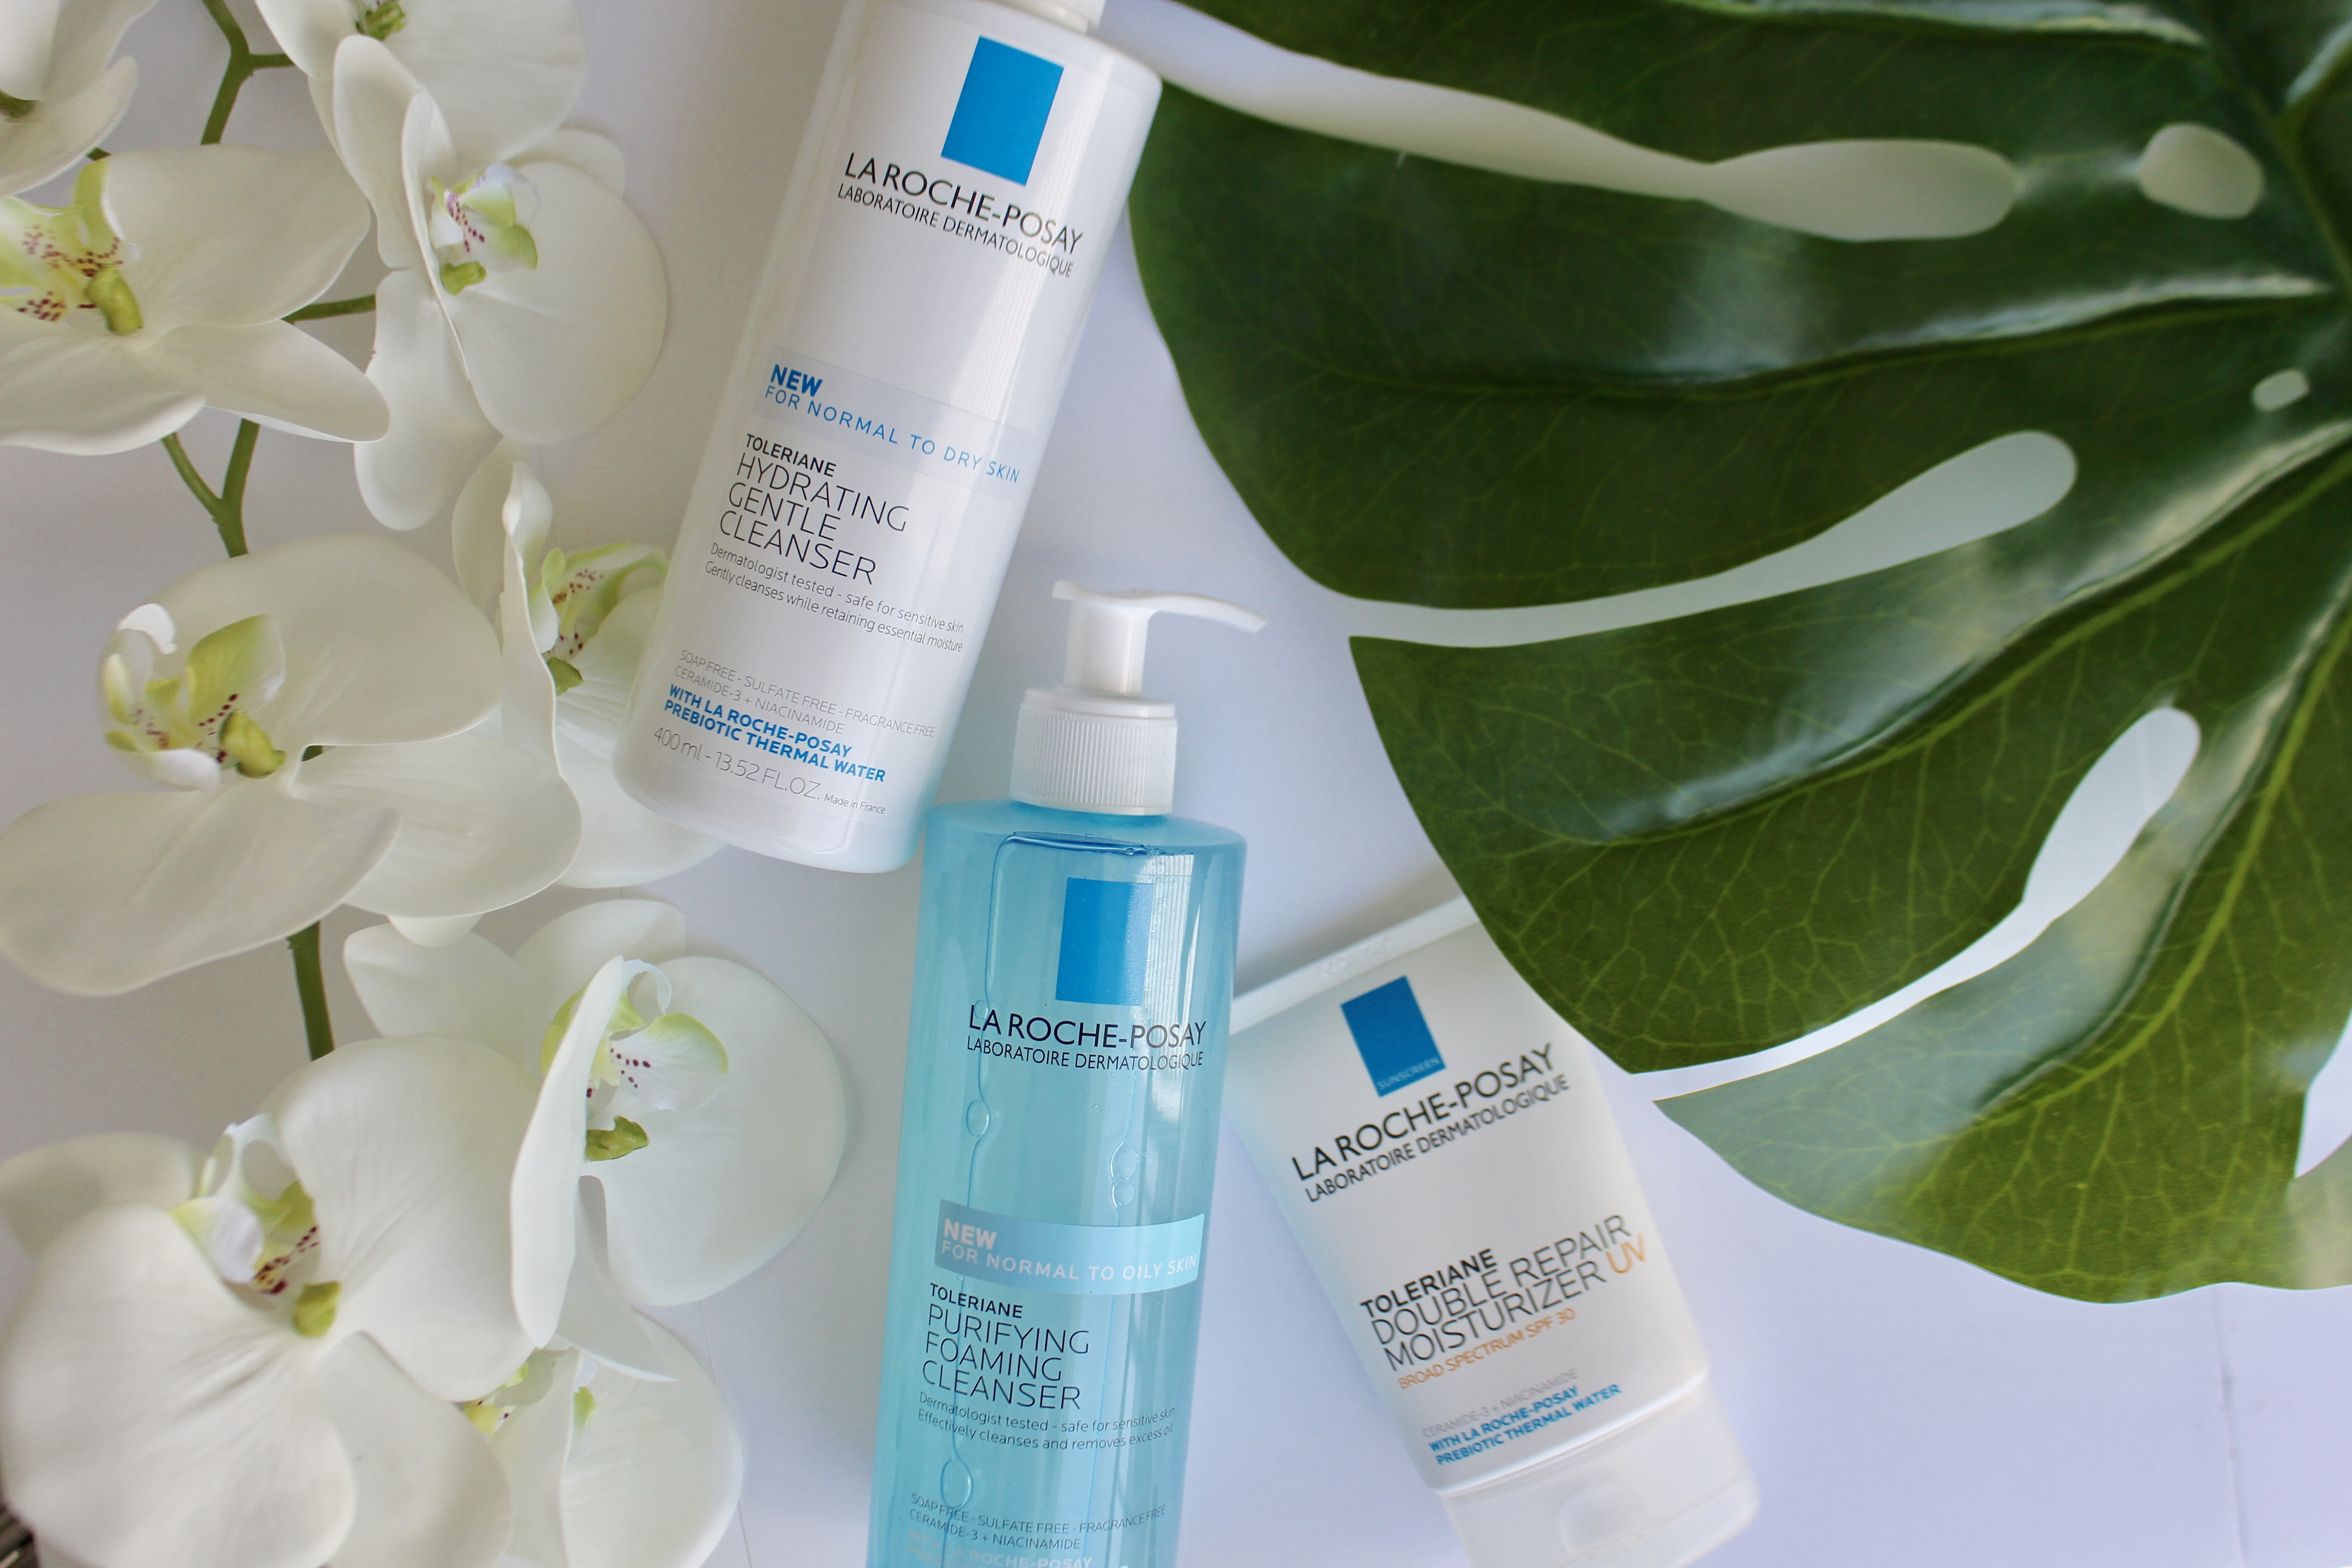 LA ROCHE-POSAY: Dermatologist Tested, Diva APPROVED!